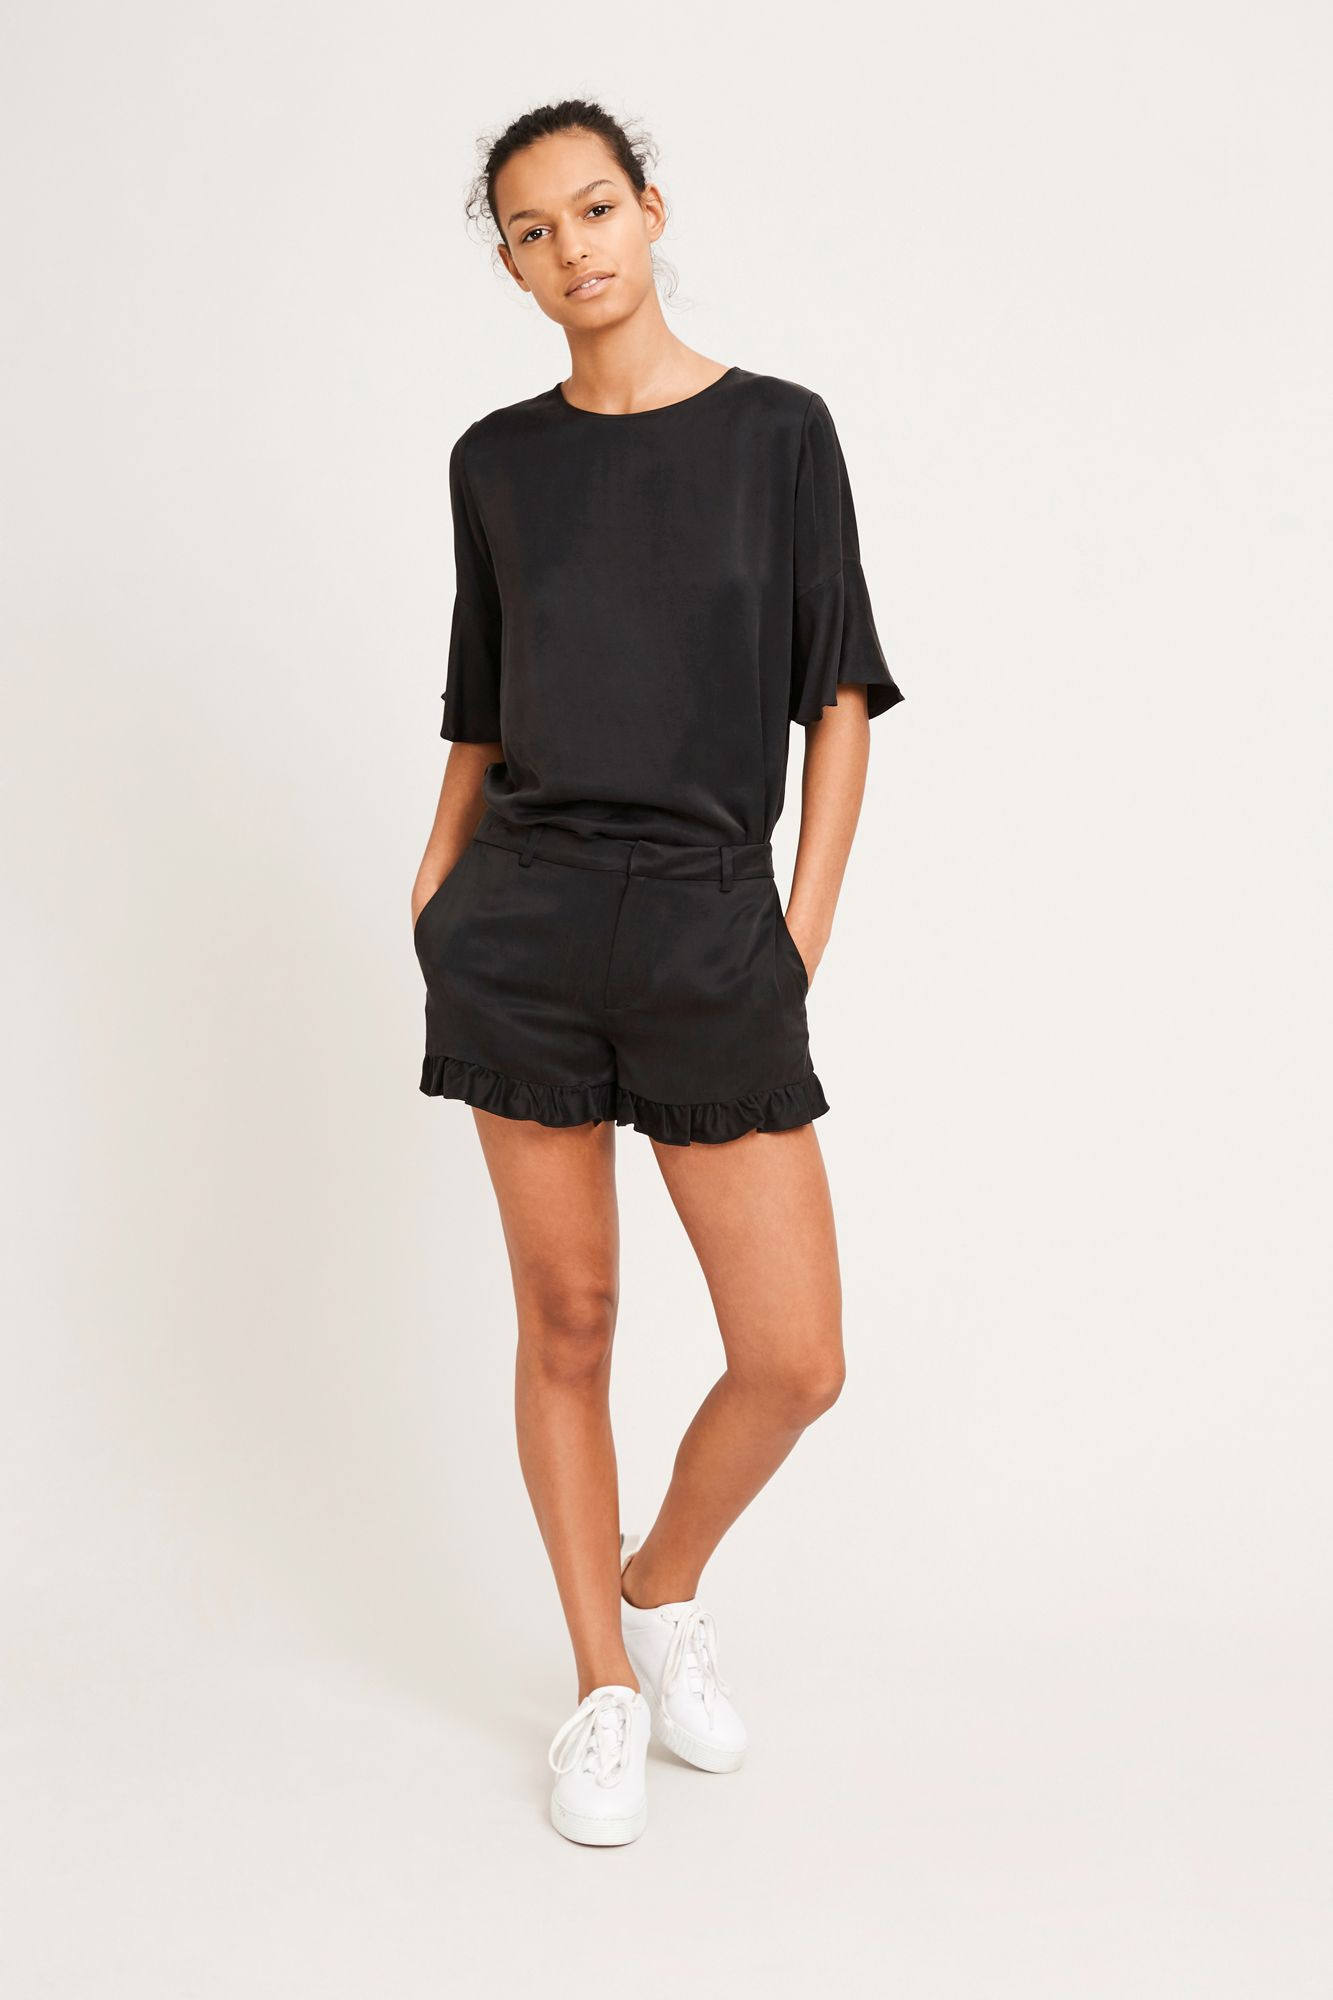 Luo shorts 9941